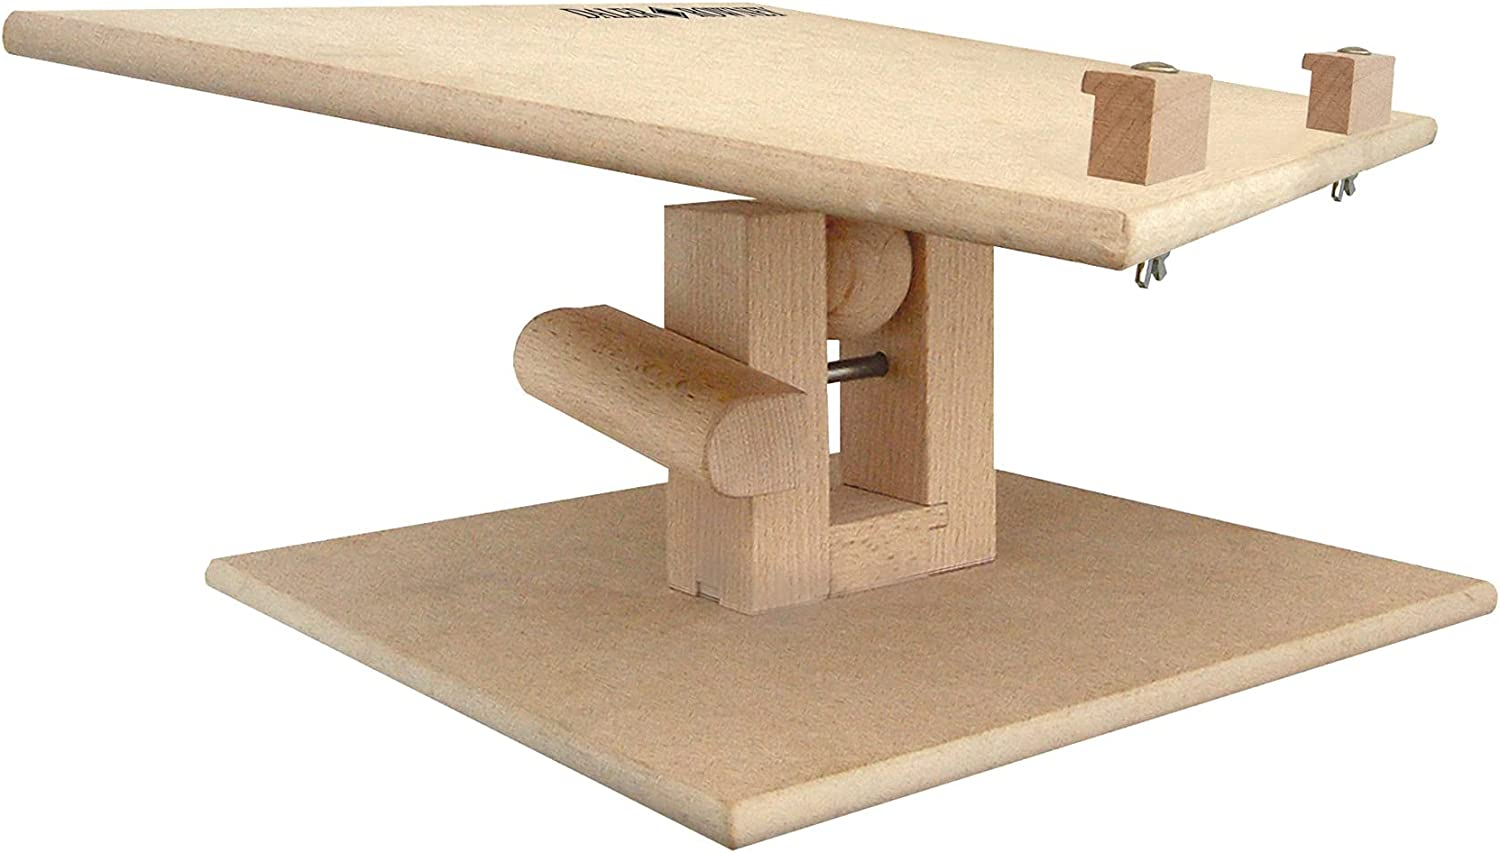 Daler-Rowney Artsphere Wooden Max 90% OFF Max 86% OFF Easel Boar Detachable Drawing with